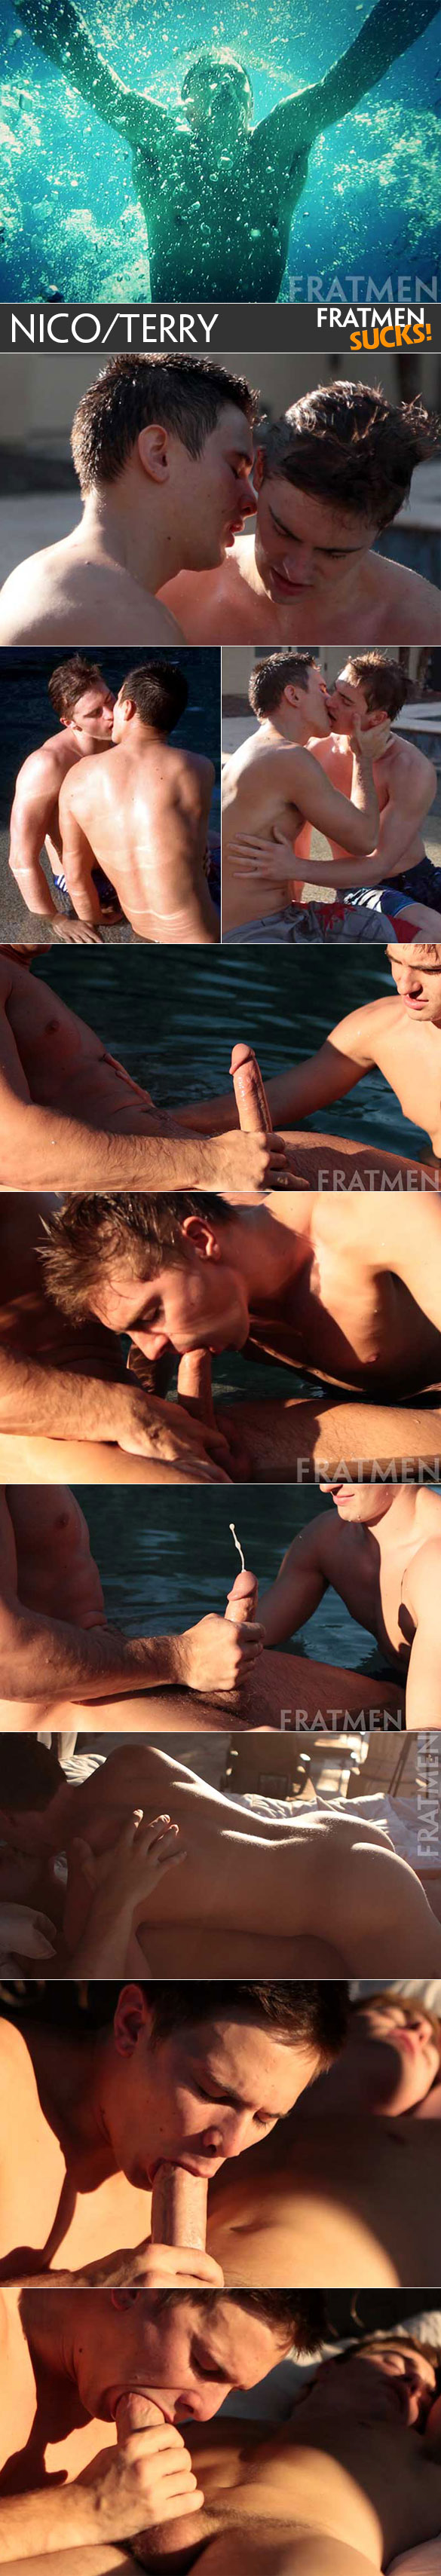 Fratmen Sucks: Nico and Terry suck each other off